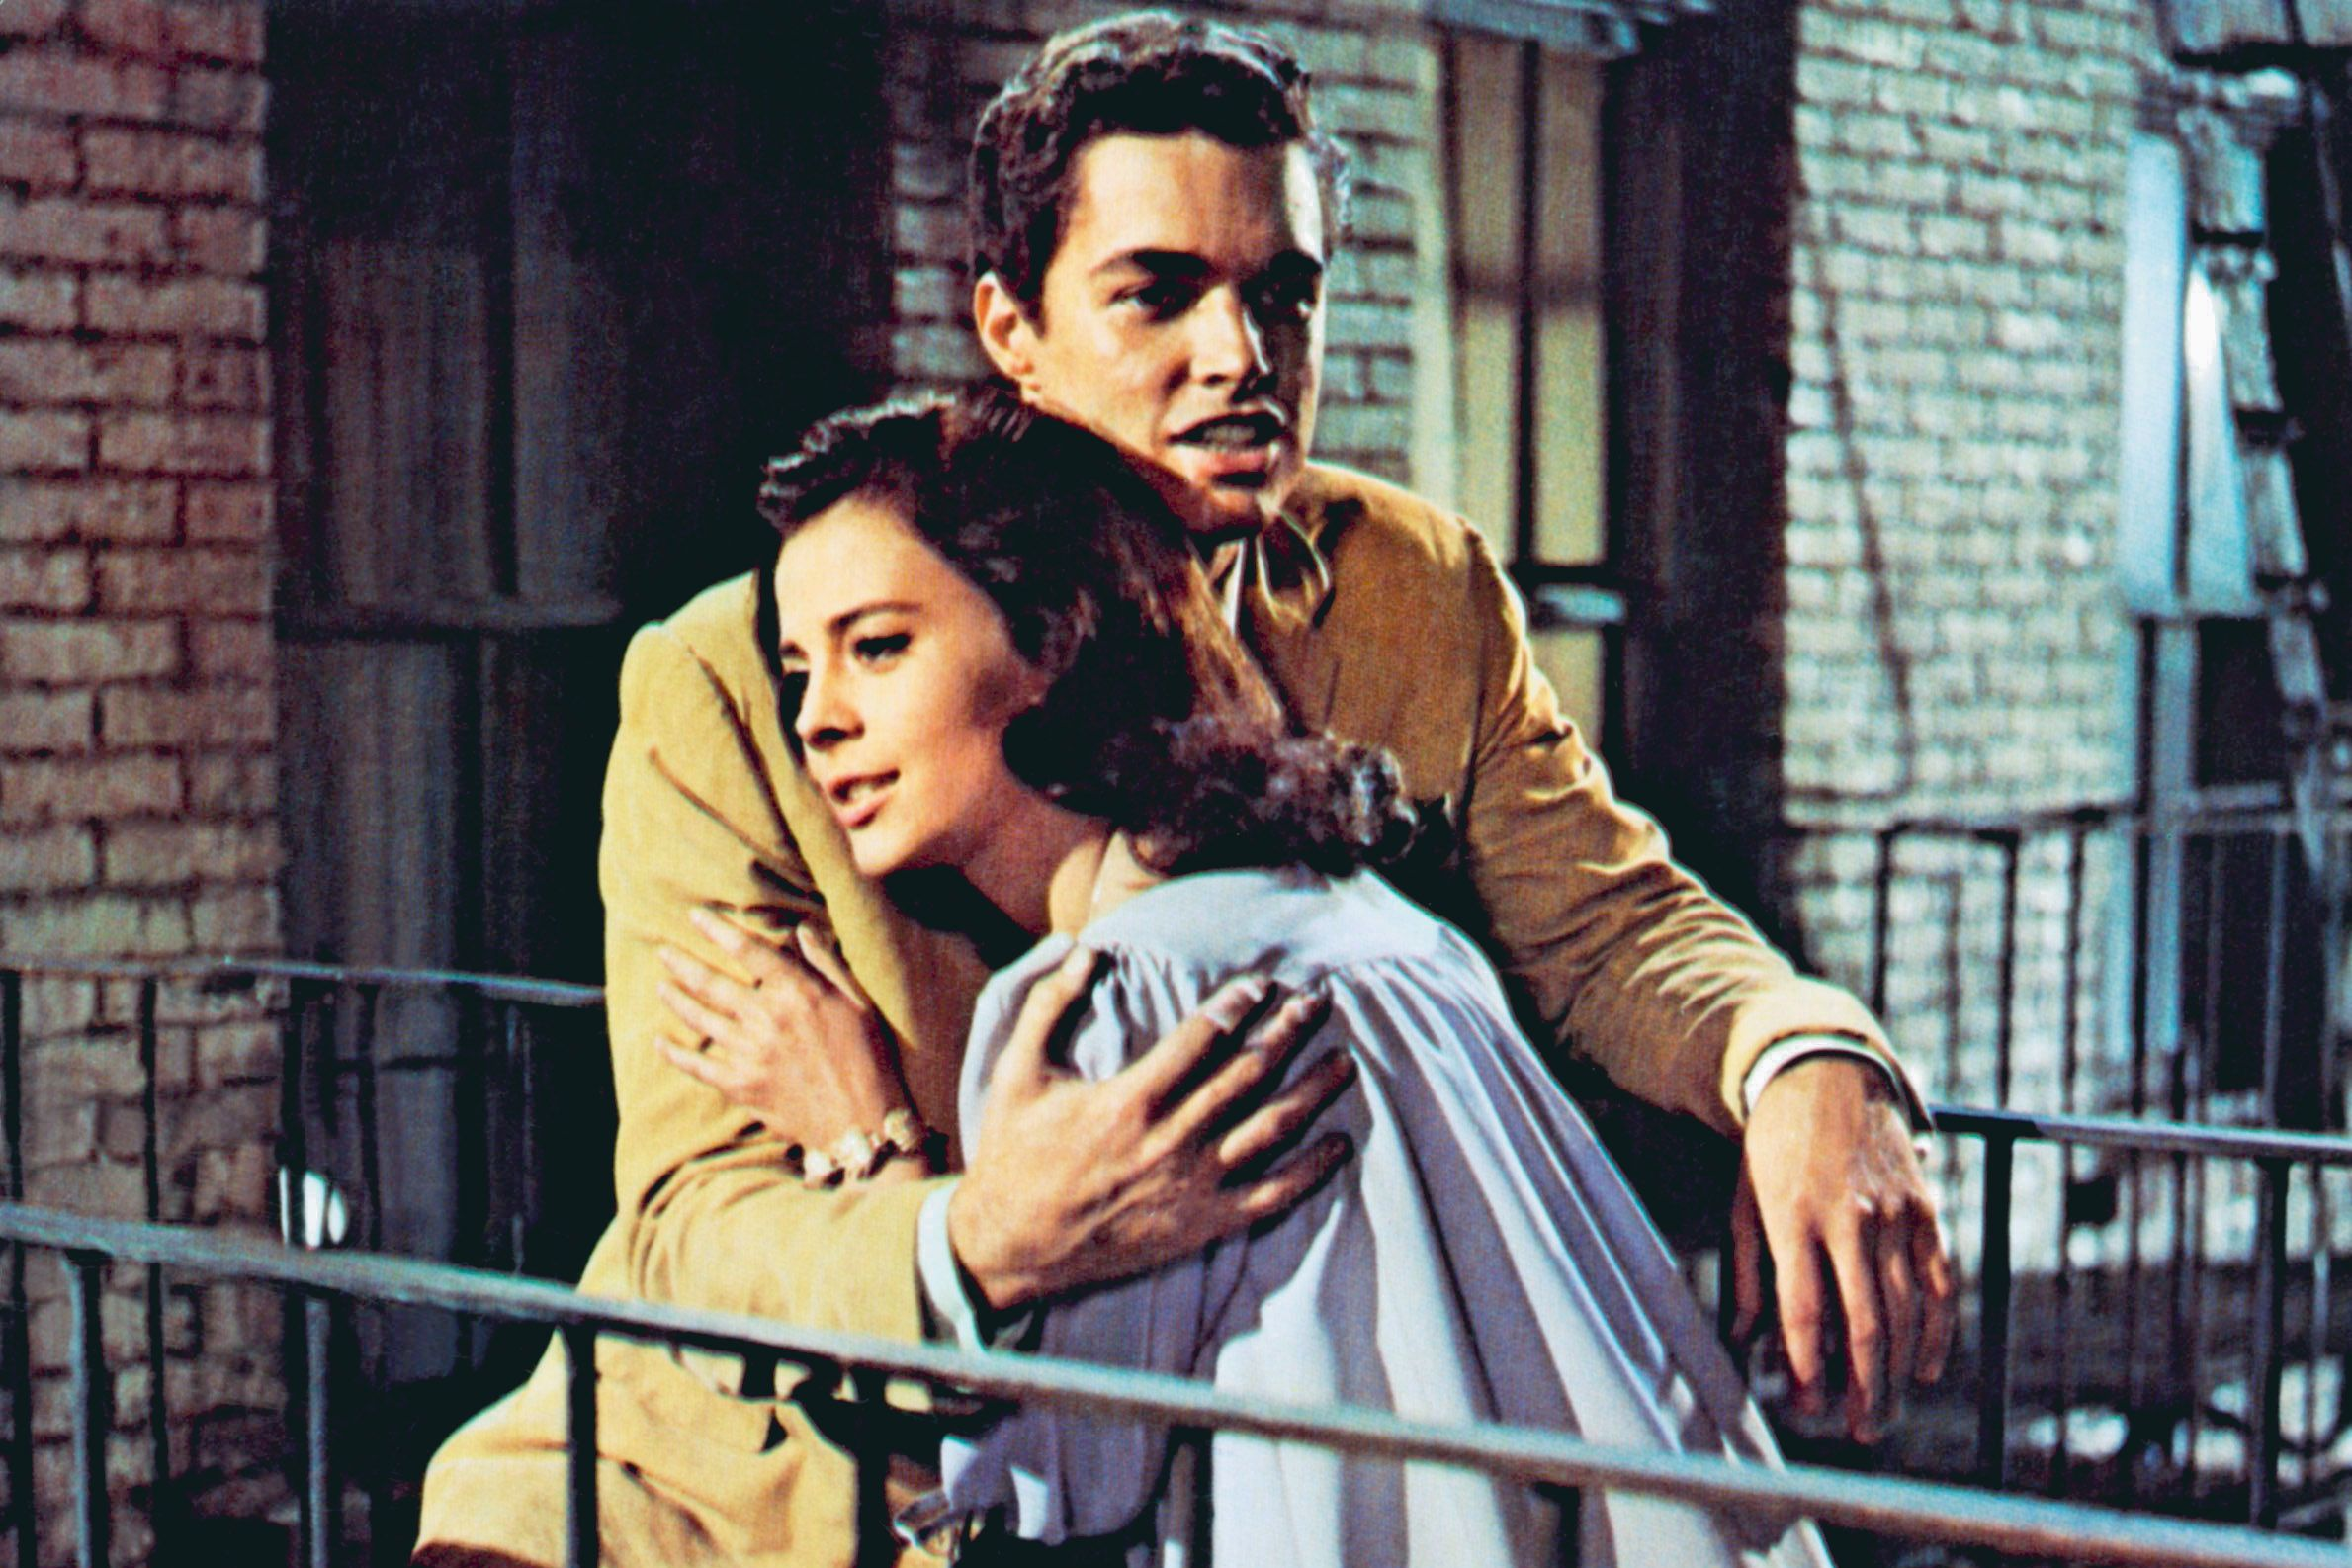 Watch Now This musical about New York City gangs was directed by choreographer Jerome Robbins and Sound of Music director Robert Wise. The Sharks and the Jets dance their battles on the streets in this modernized take on Romeo and Juliet .